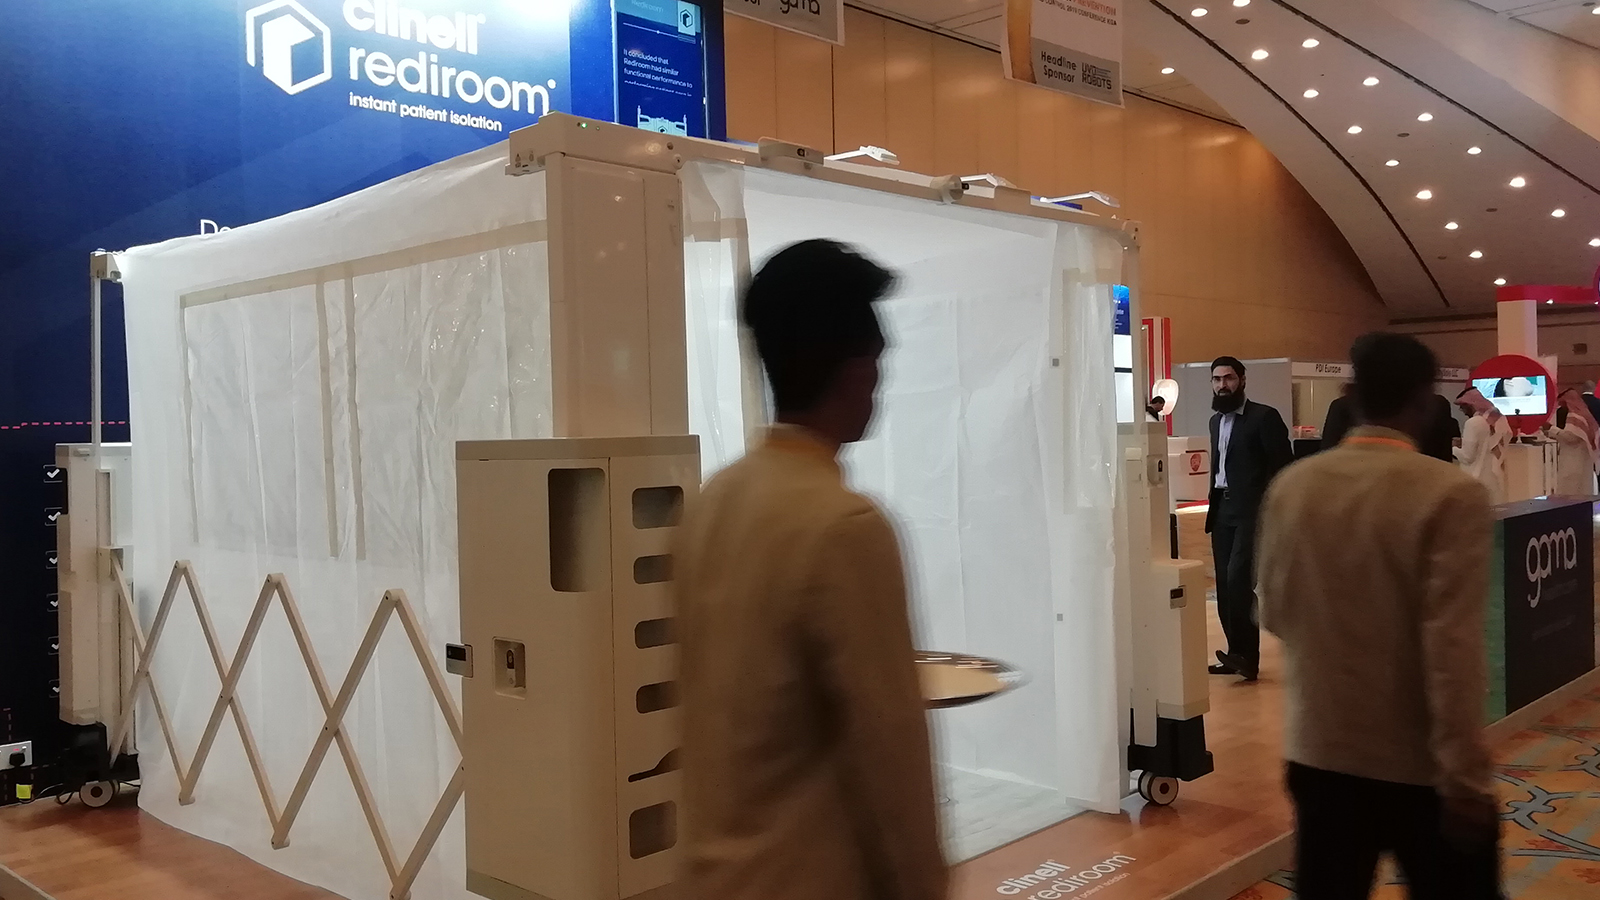 Stand design and build for Gamma Healthcare at Infection Prevention and Control